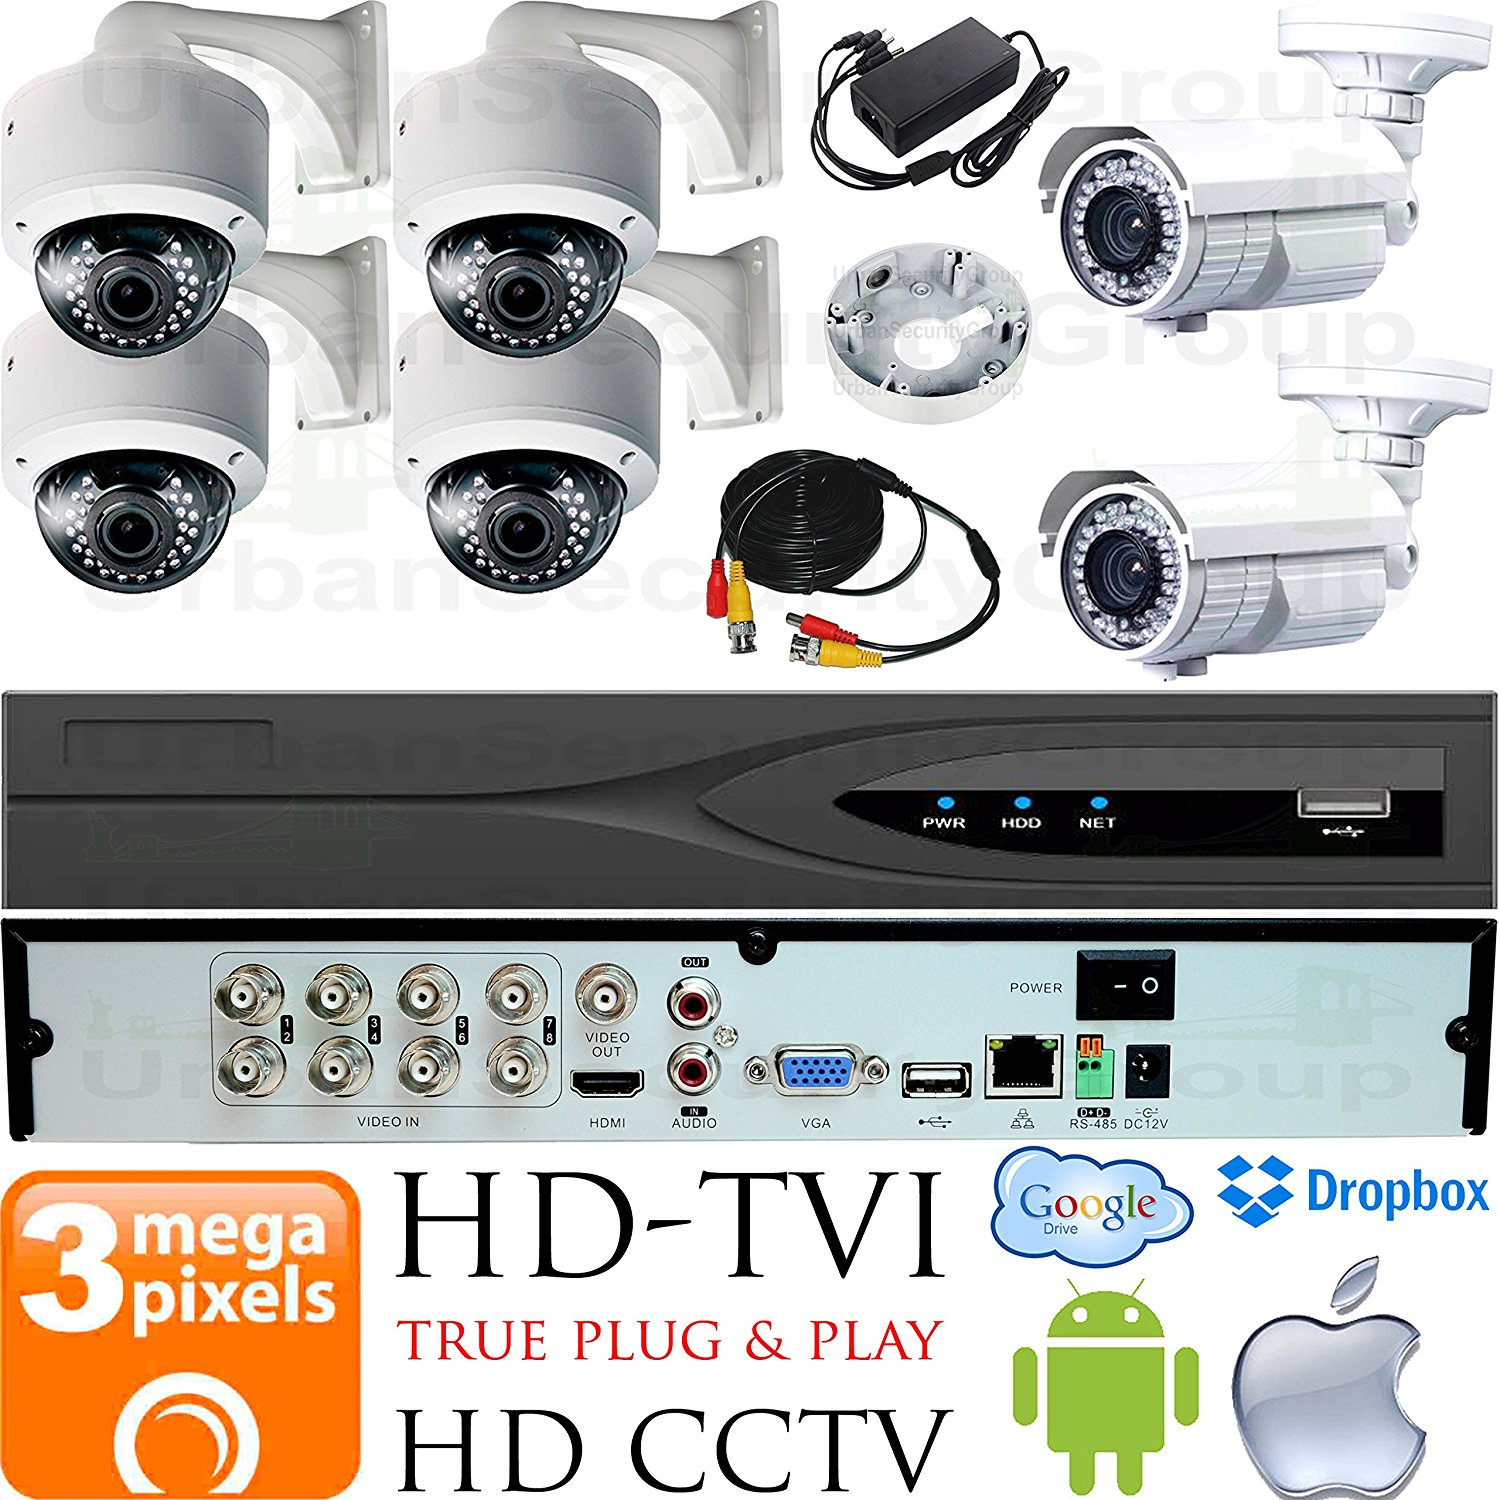 USG Business Grade 3MP HD-TVI 6 Camera CCTV Kit : 4x 2.8-12mm Dome + 2x 5-50mm Bullet Cameras + 1x 8 Channel 3MP DVR + 1x 4TB HDD + 6x 100ft CCTV Cable + 2x 4 Channel Power Supply : Android Apple App